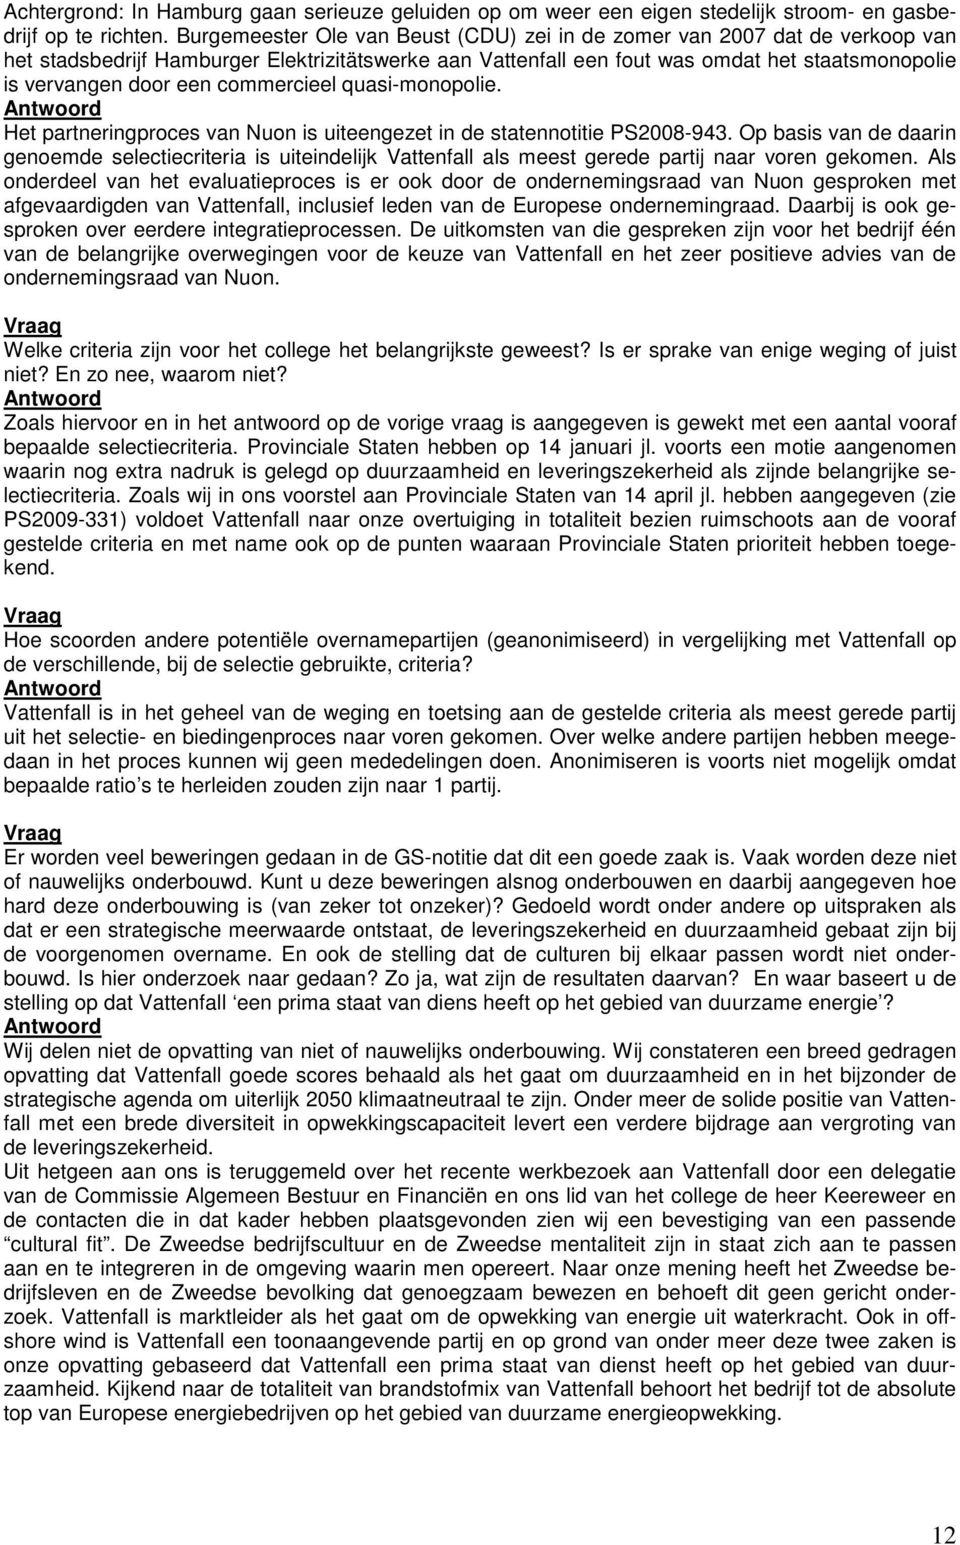 commercieel quasi-monopolie. Het partneringproces van Nuon is uiteengezet in de statennotitie PS2008-943.